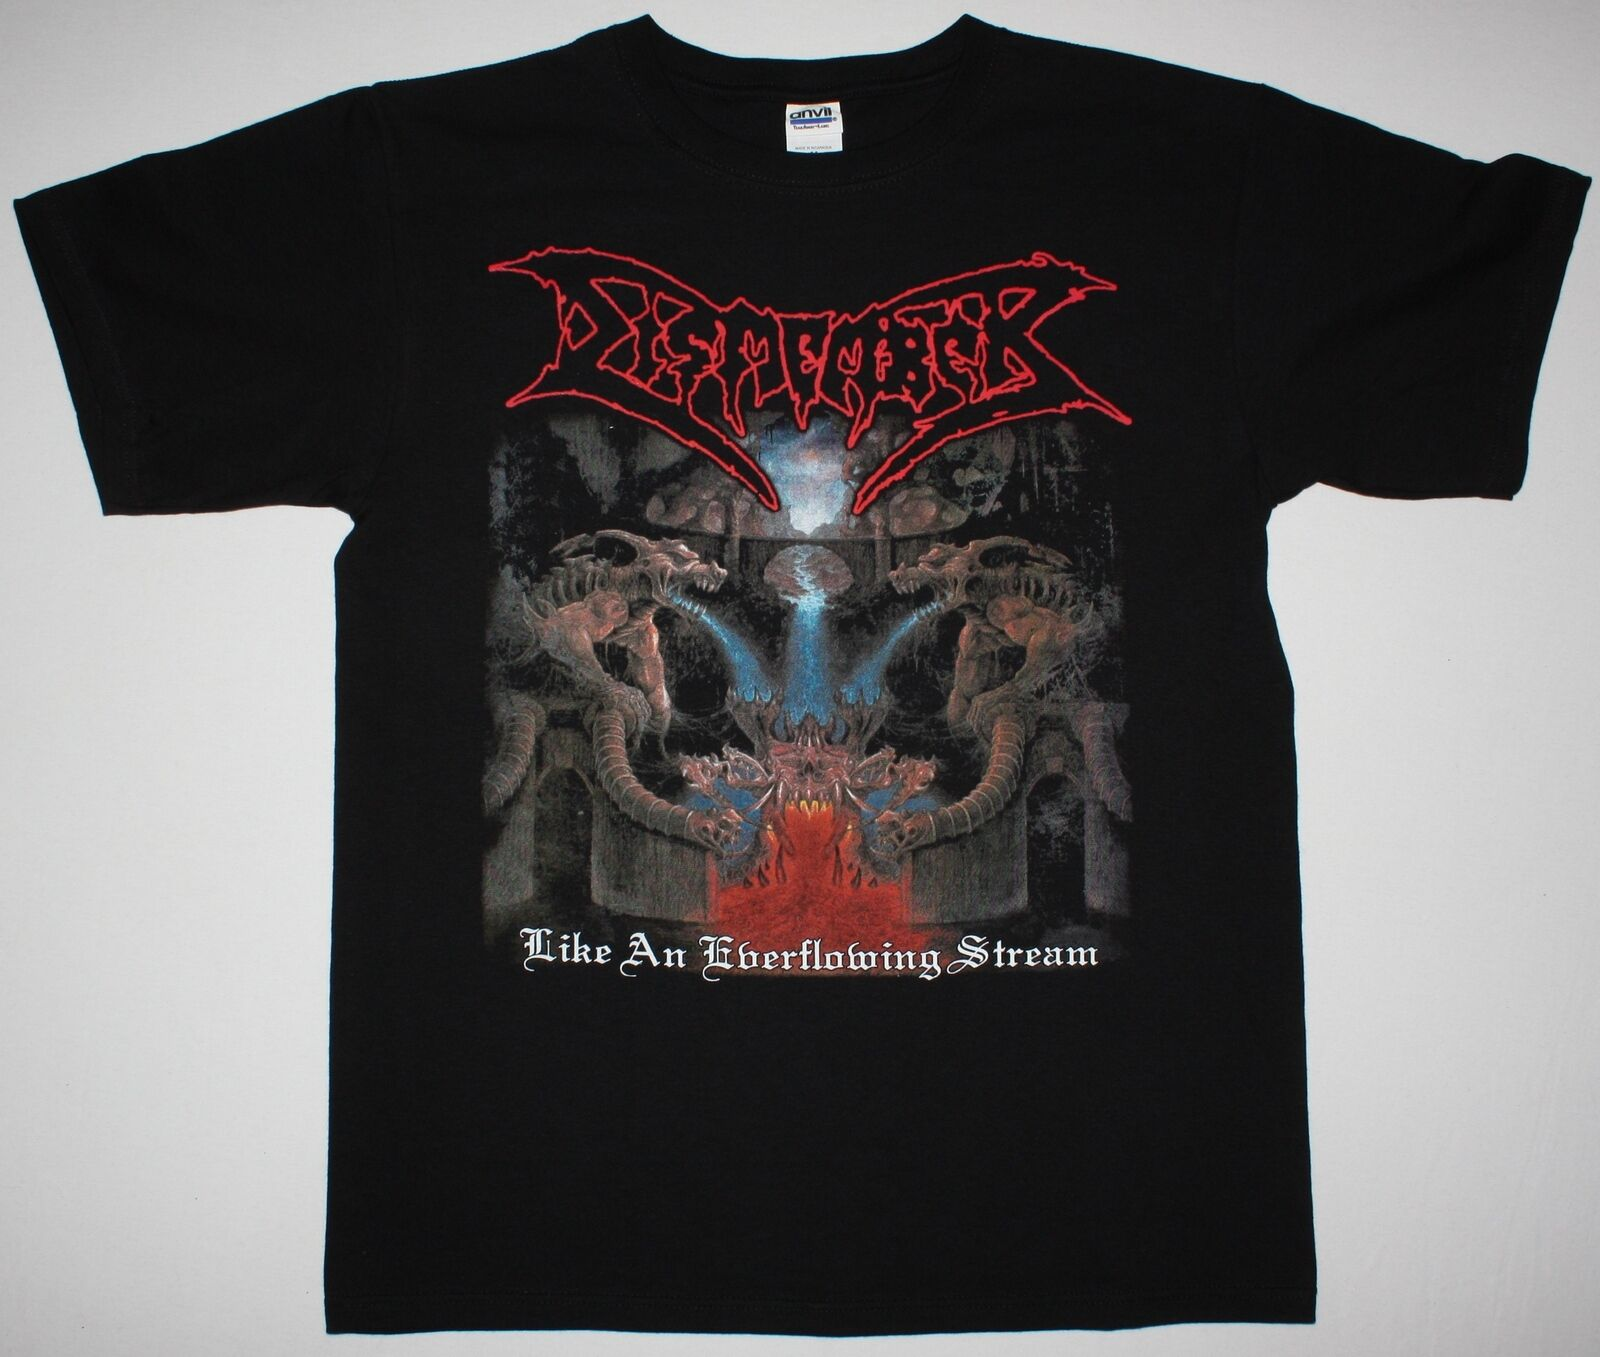 DISMEMBER LIKE AN EVERFLOWING STREAM DEATH CARCASS NEW BLACK T-SHIRT